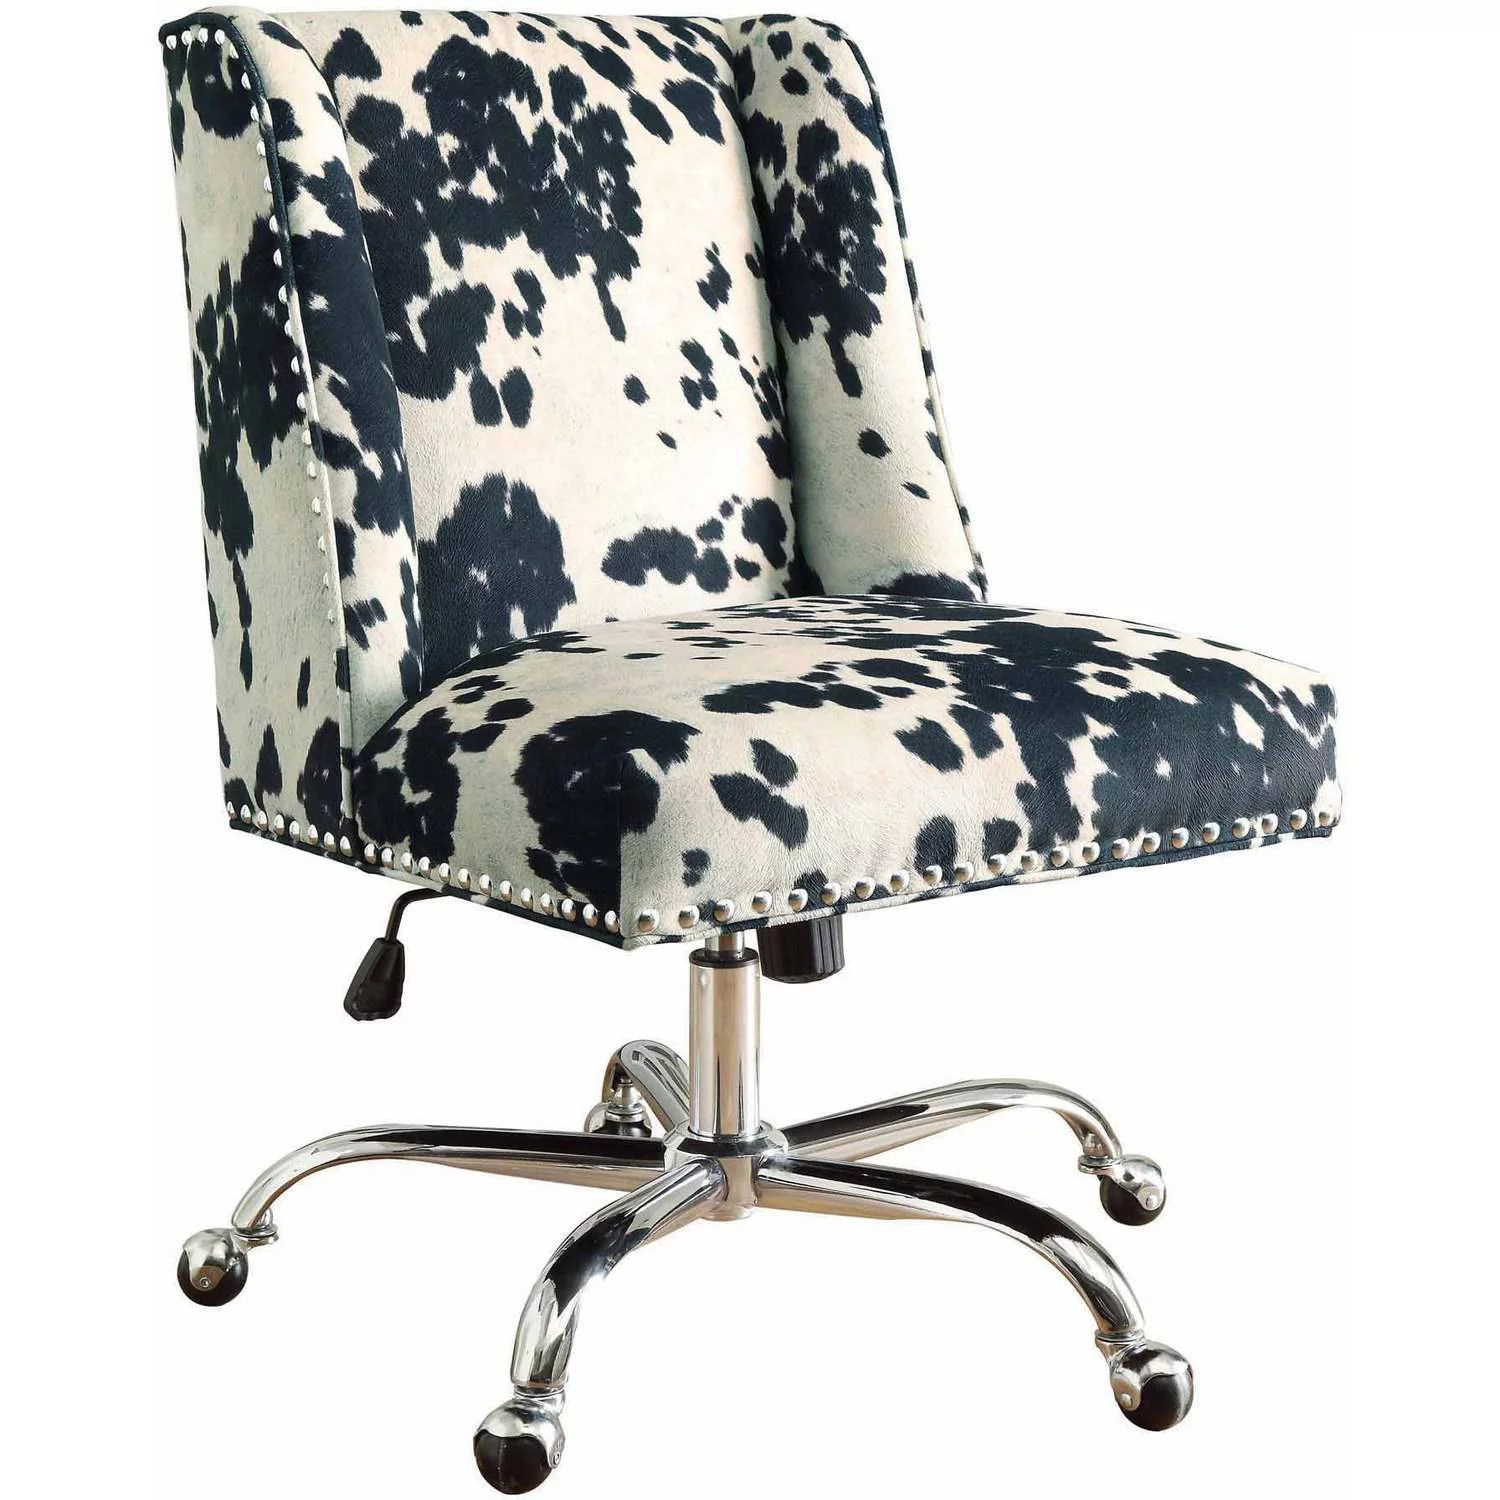 jeep desk chair contemporary rocking chairs for nursery linon draper office multiple colors walmart com